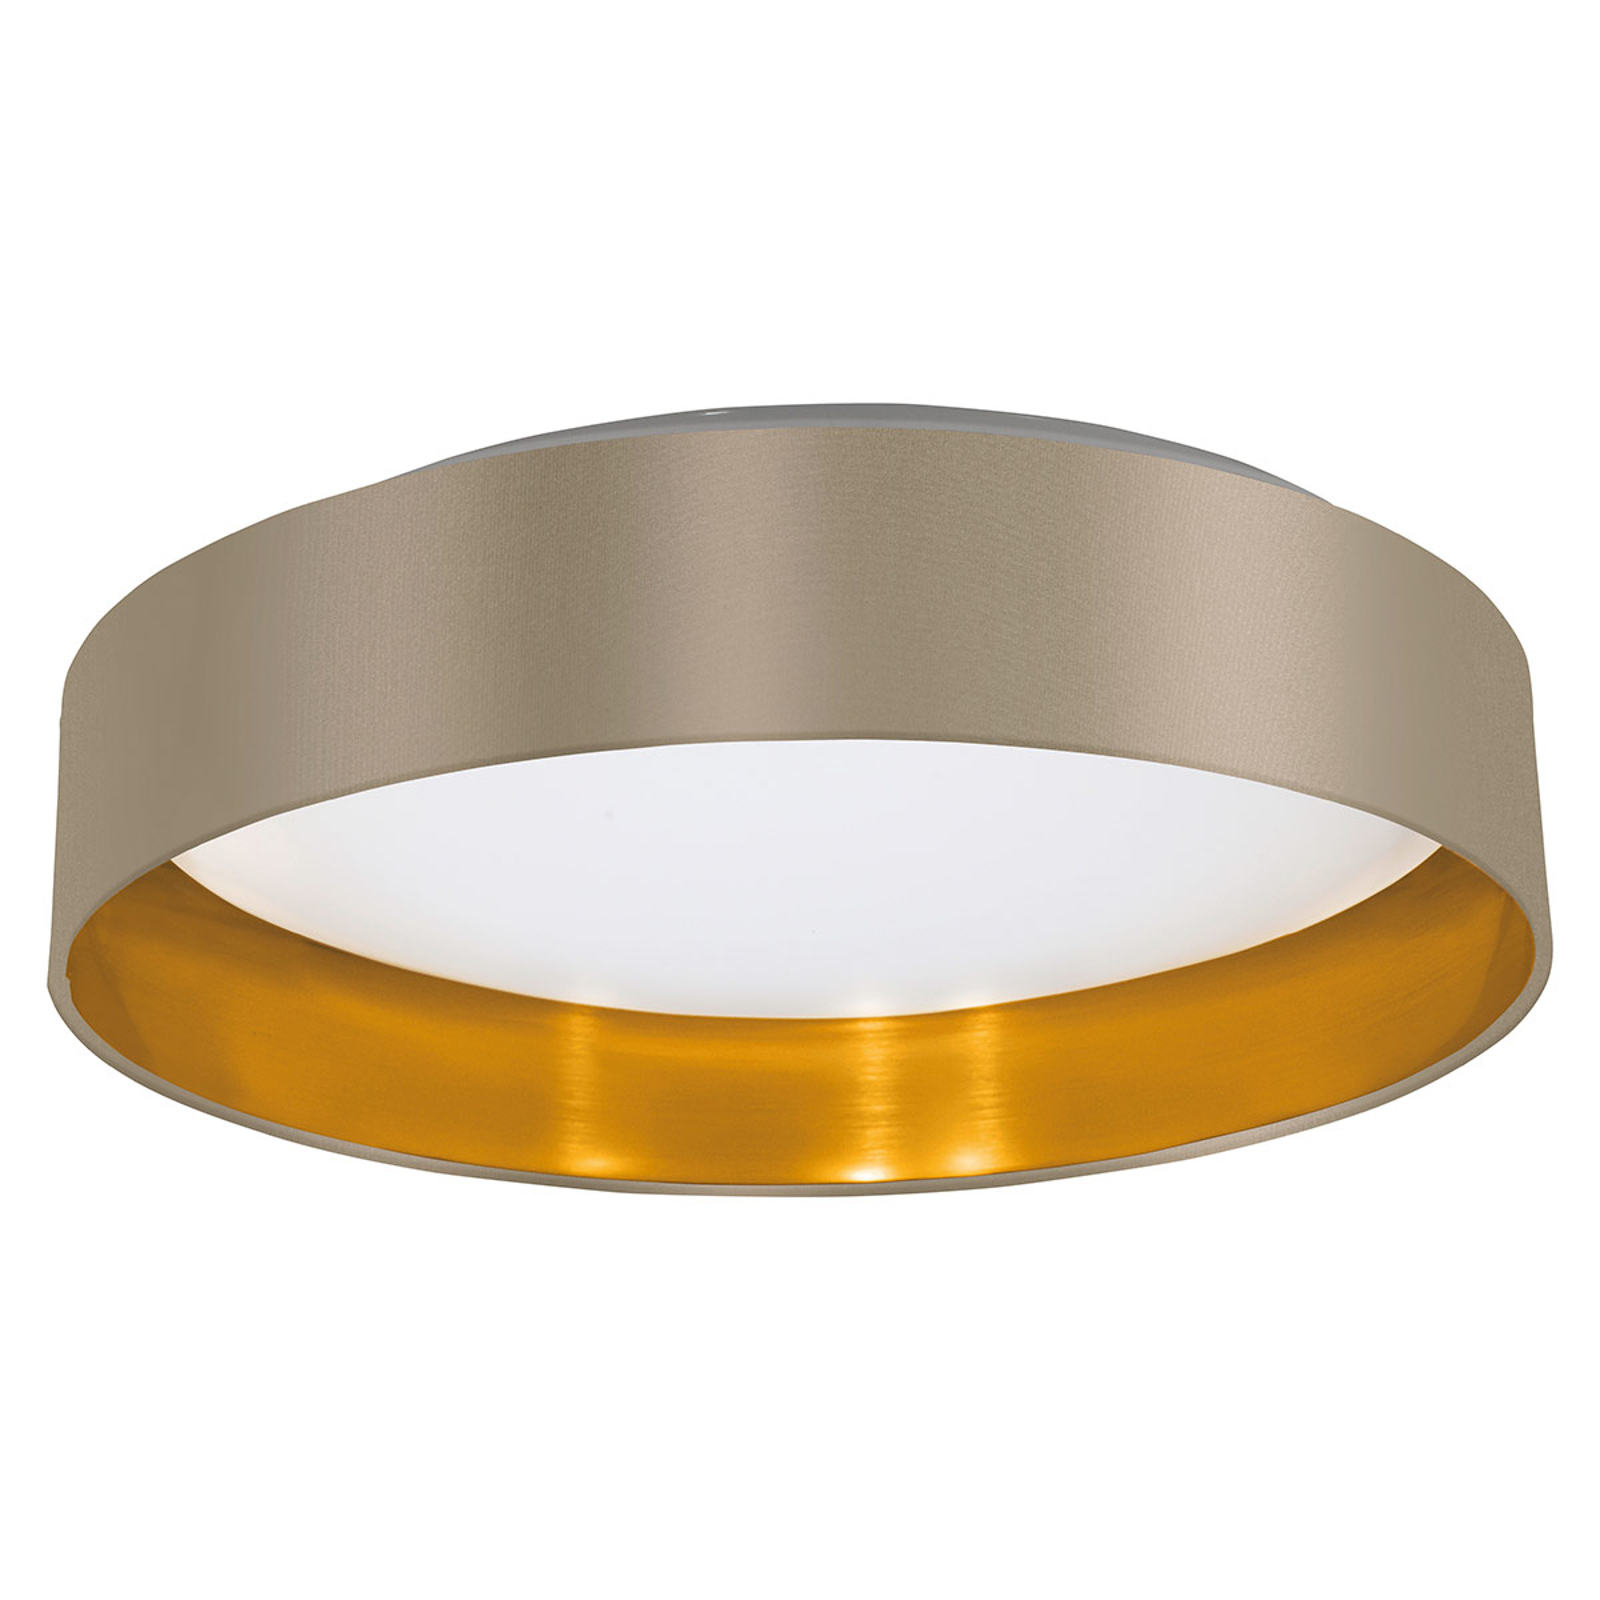 LED-Deckenleuchte Maserlo in Taupe-Gold